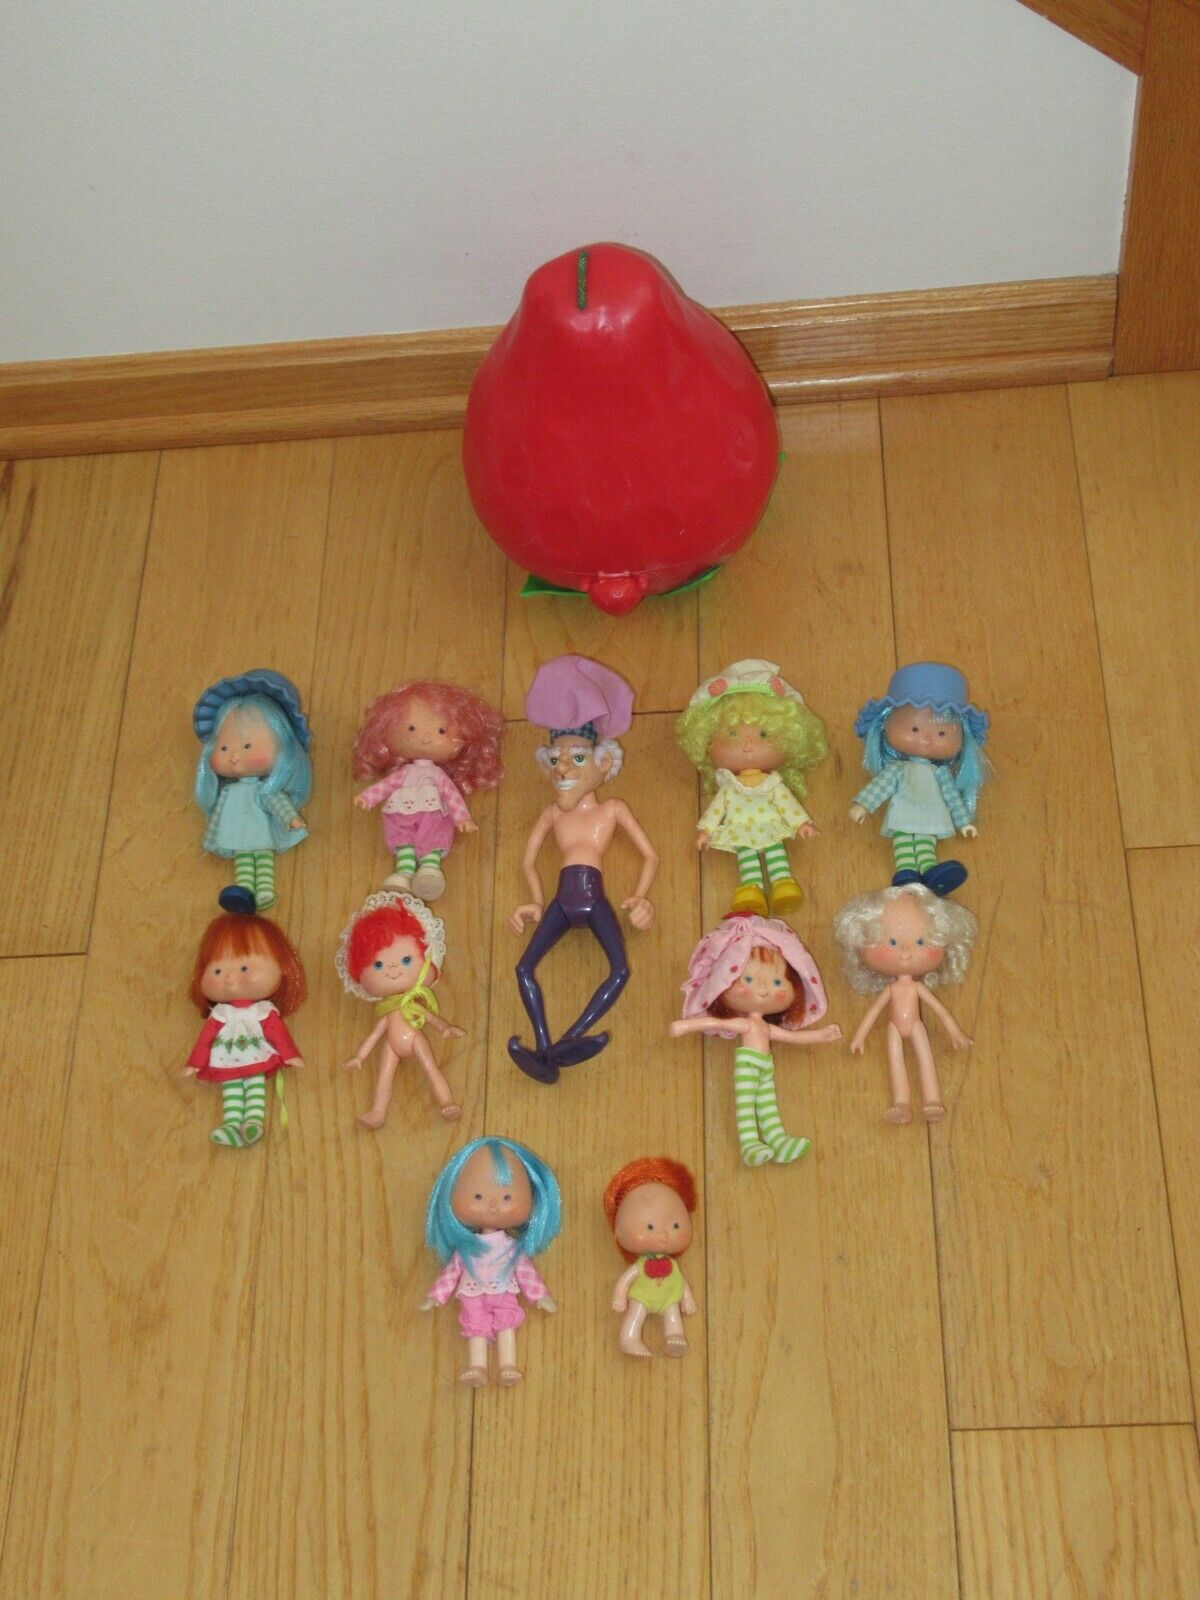 Vintage Strawberry Shortcake Doll Figure Lot Carry Case F46  - $29.99